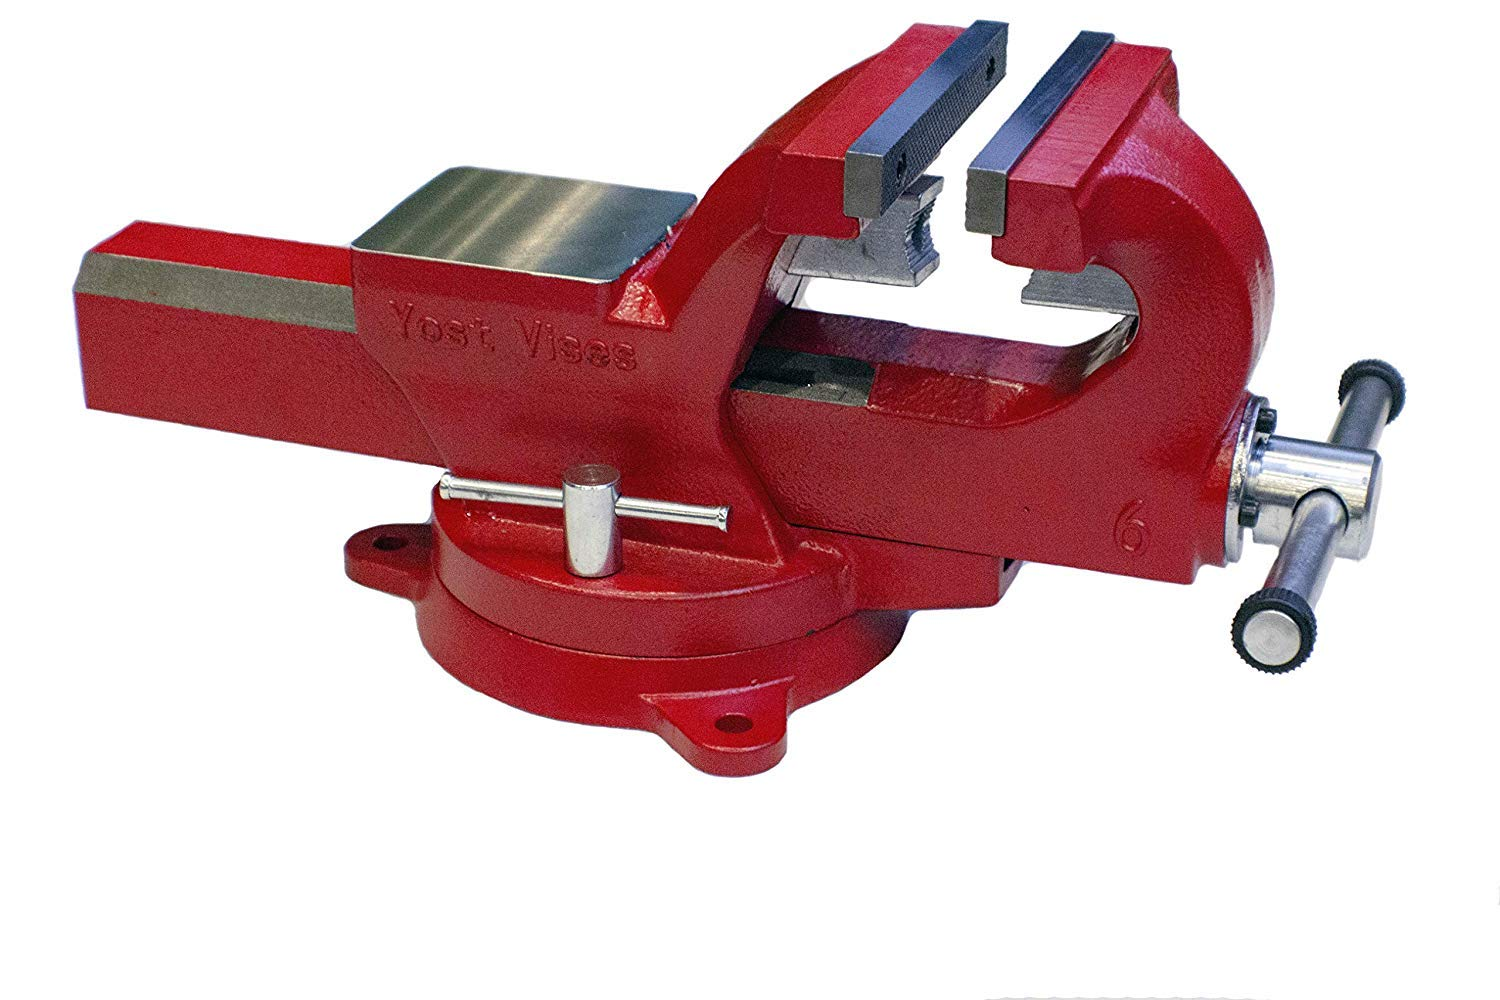 Yost Vises ADI-4, 4 Inch 130,000 PSI Austempered Ductile Iron (ADI) Bench Vise with 360-Degree Swivel Base superseding Yost FSV-4 by Yost Tools